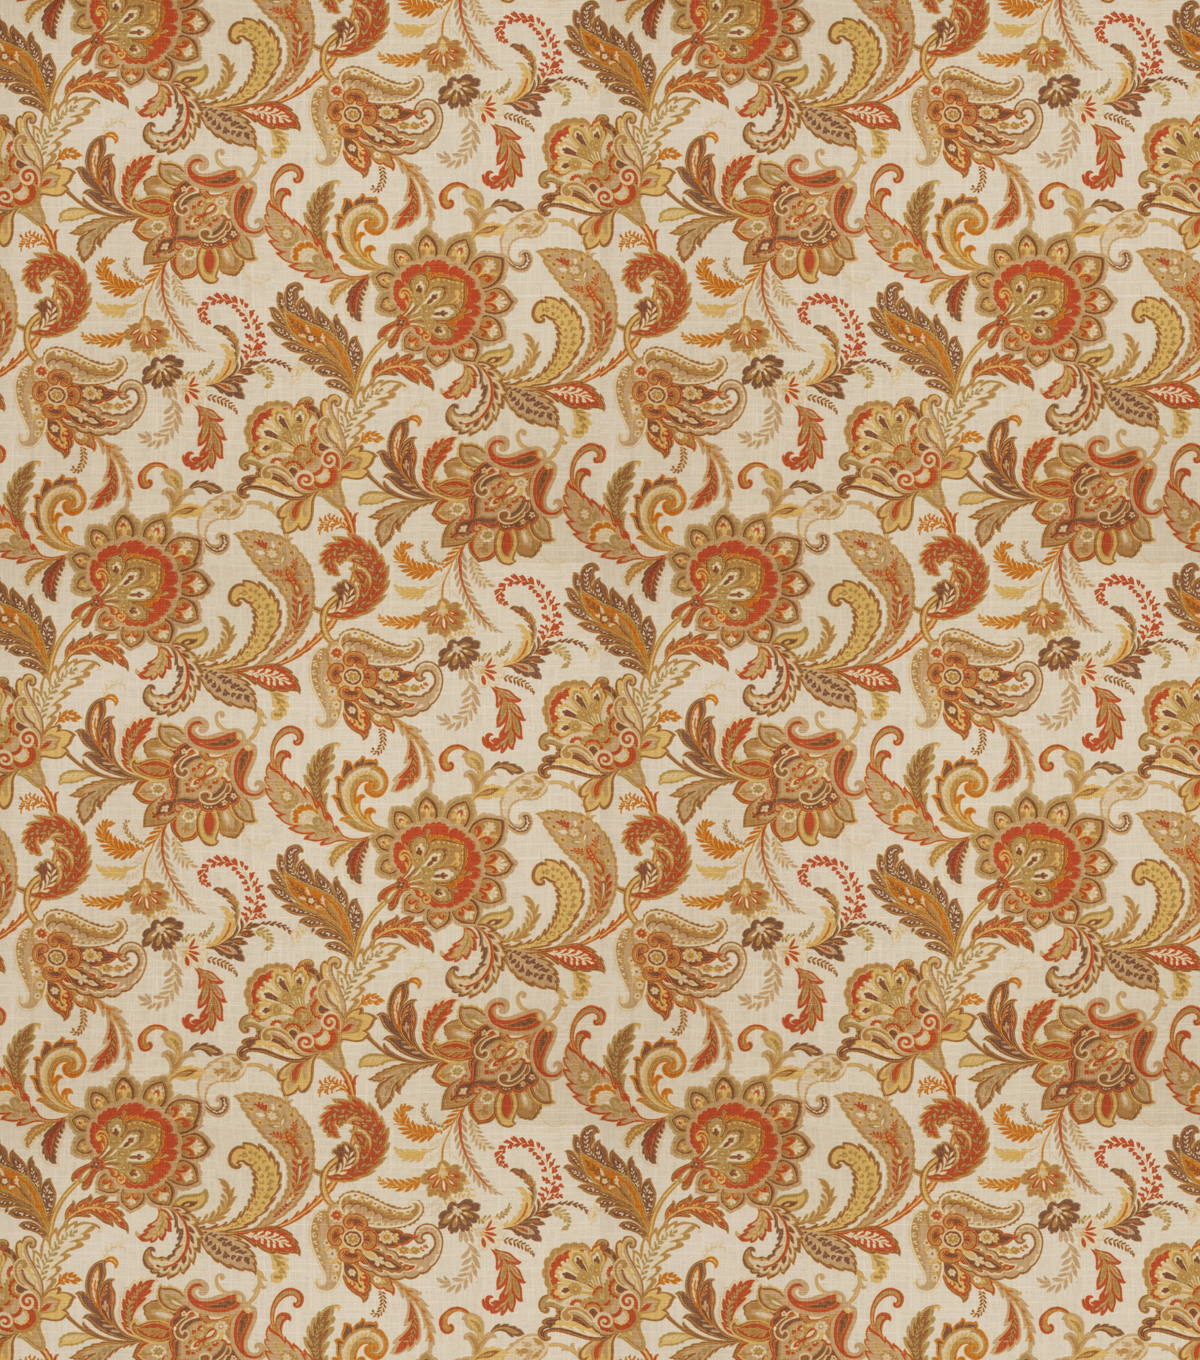 SMC Designs Multi-Purpose Decor Fabric 54\u0022-Bowling/ Opal